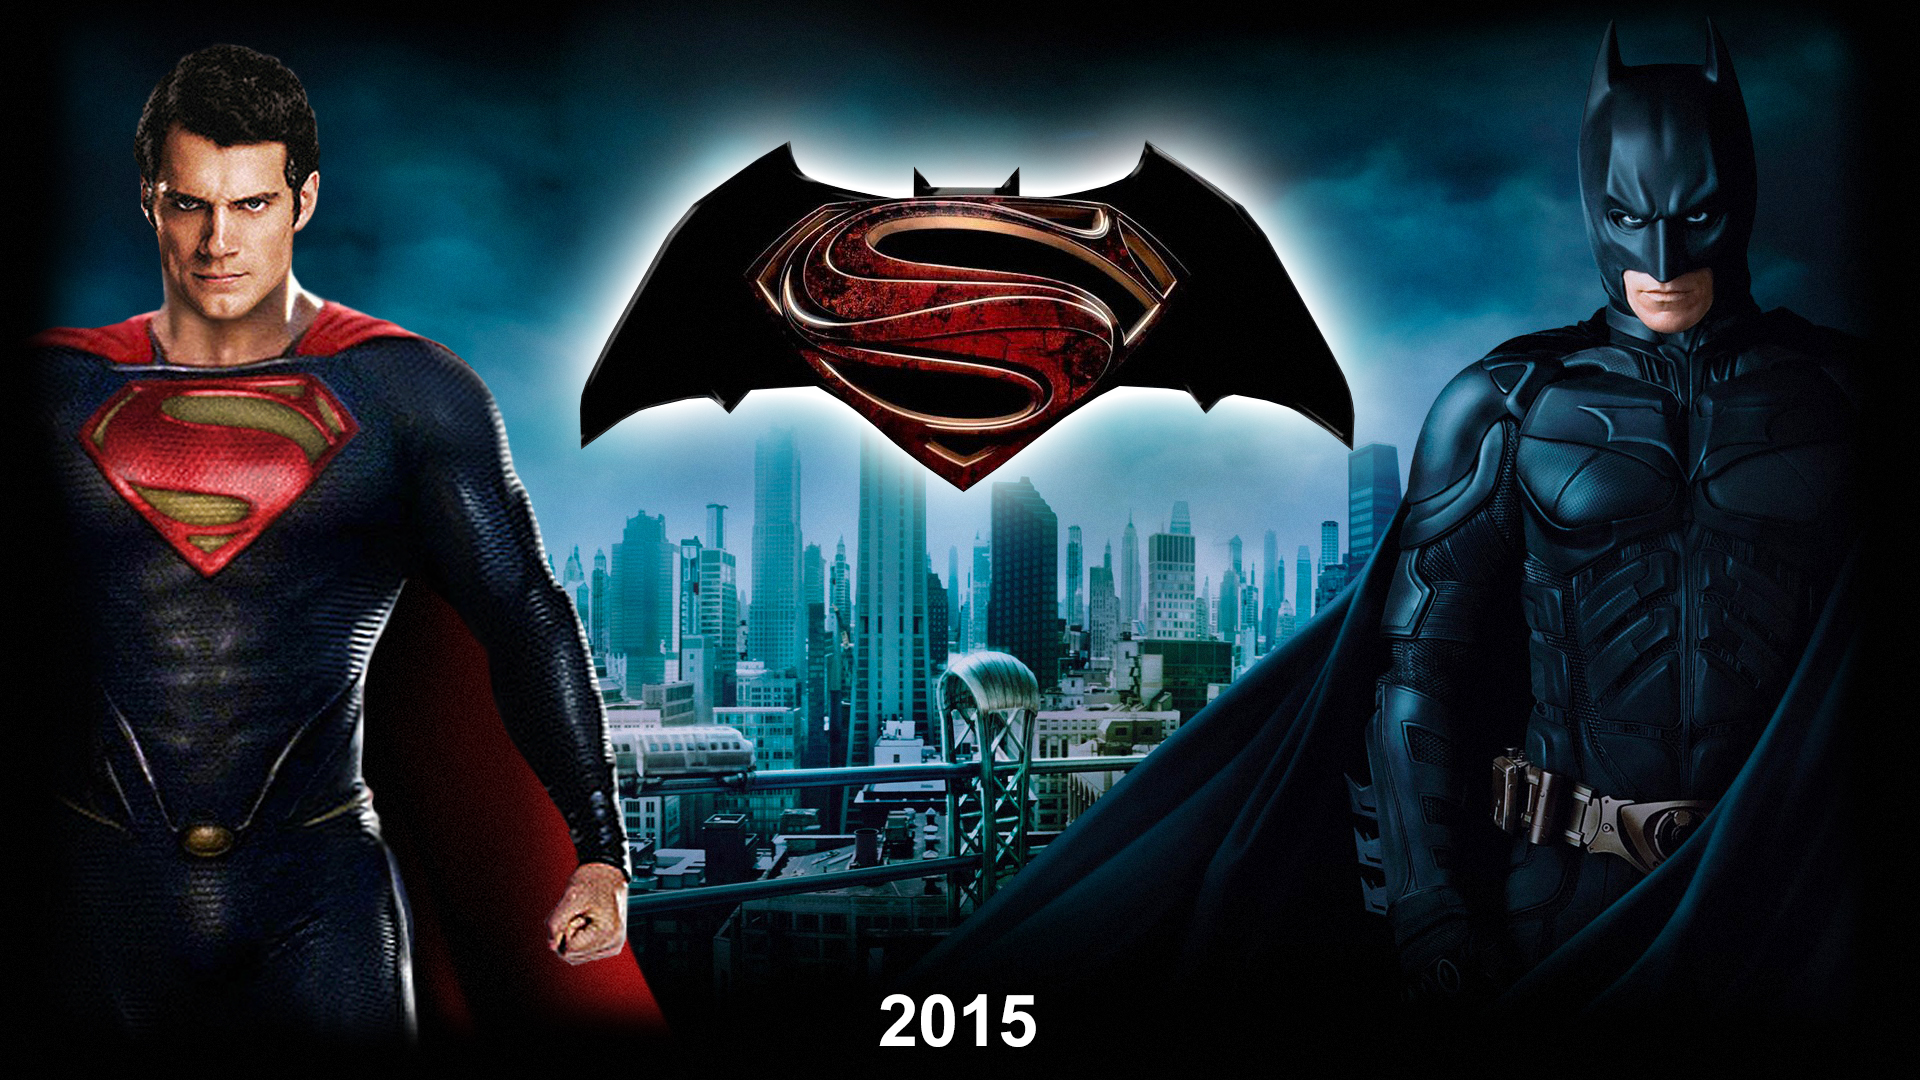 VS Superman 2015 HD Wallpaper Batman VS Superman 2015 HD Wallpaper 1920x1080